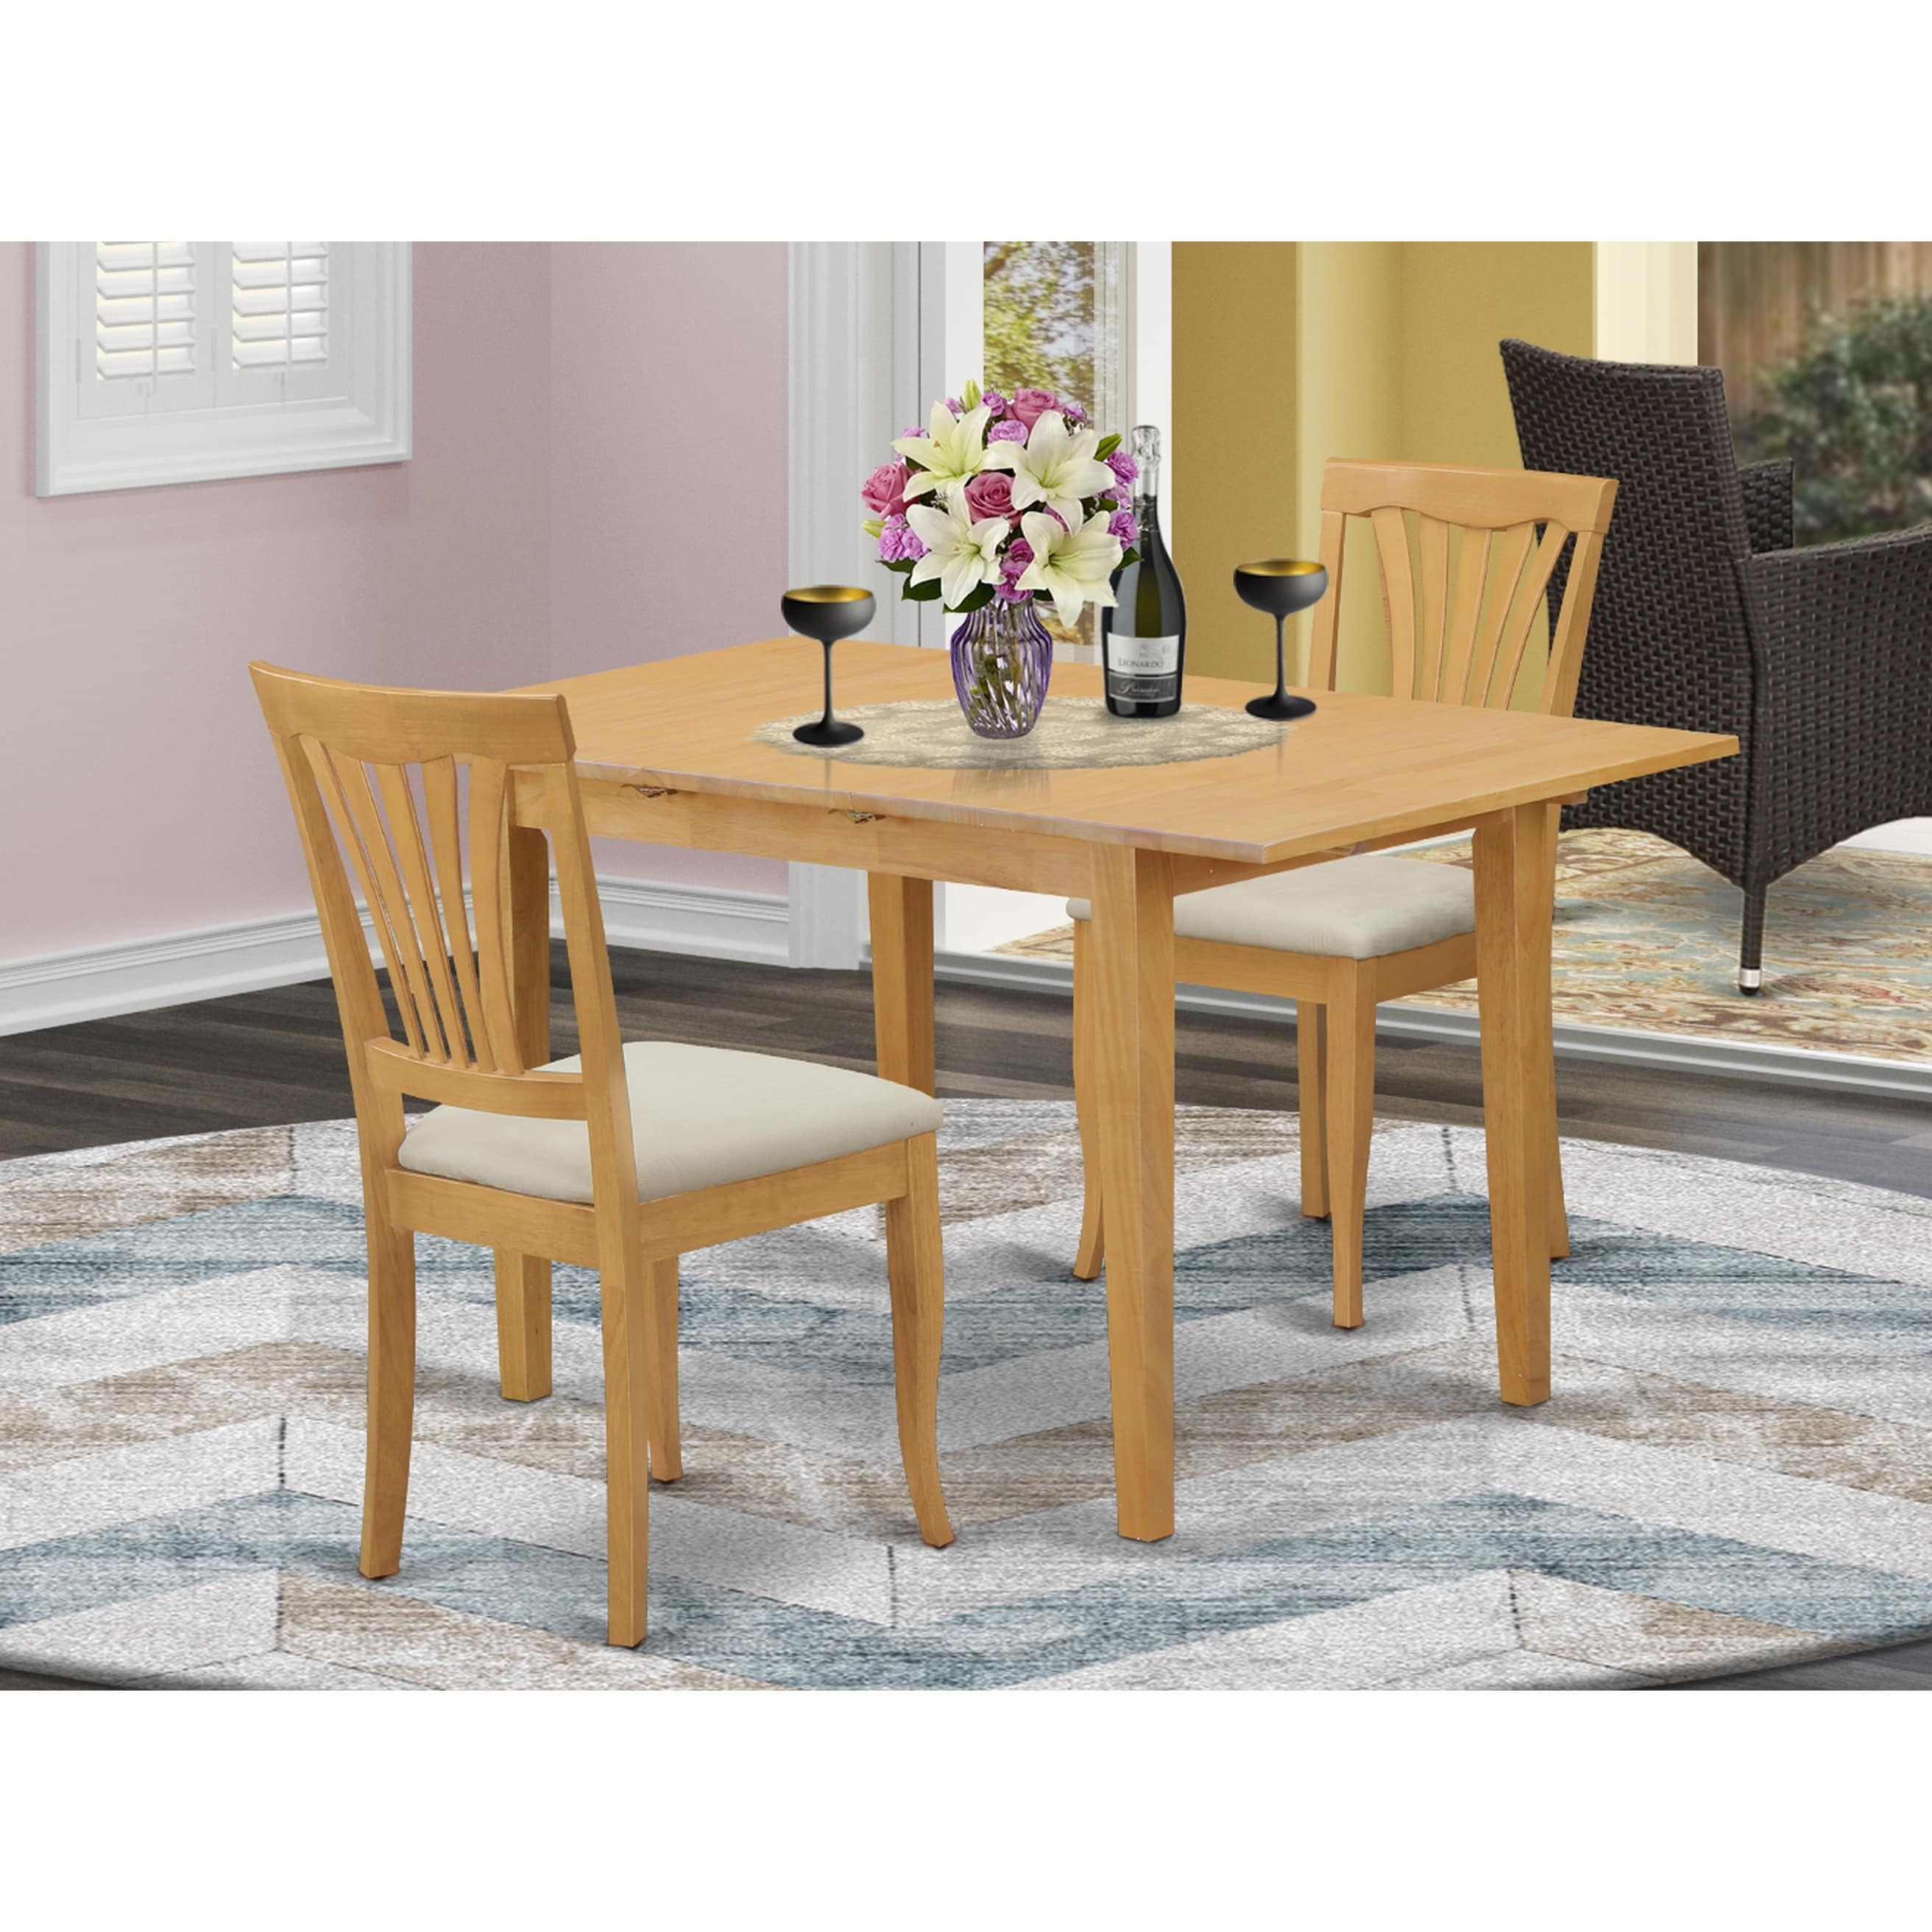 3 Piece Small Kitchen Table Set Oak Overstock 14366579